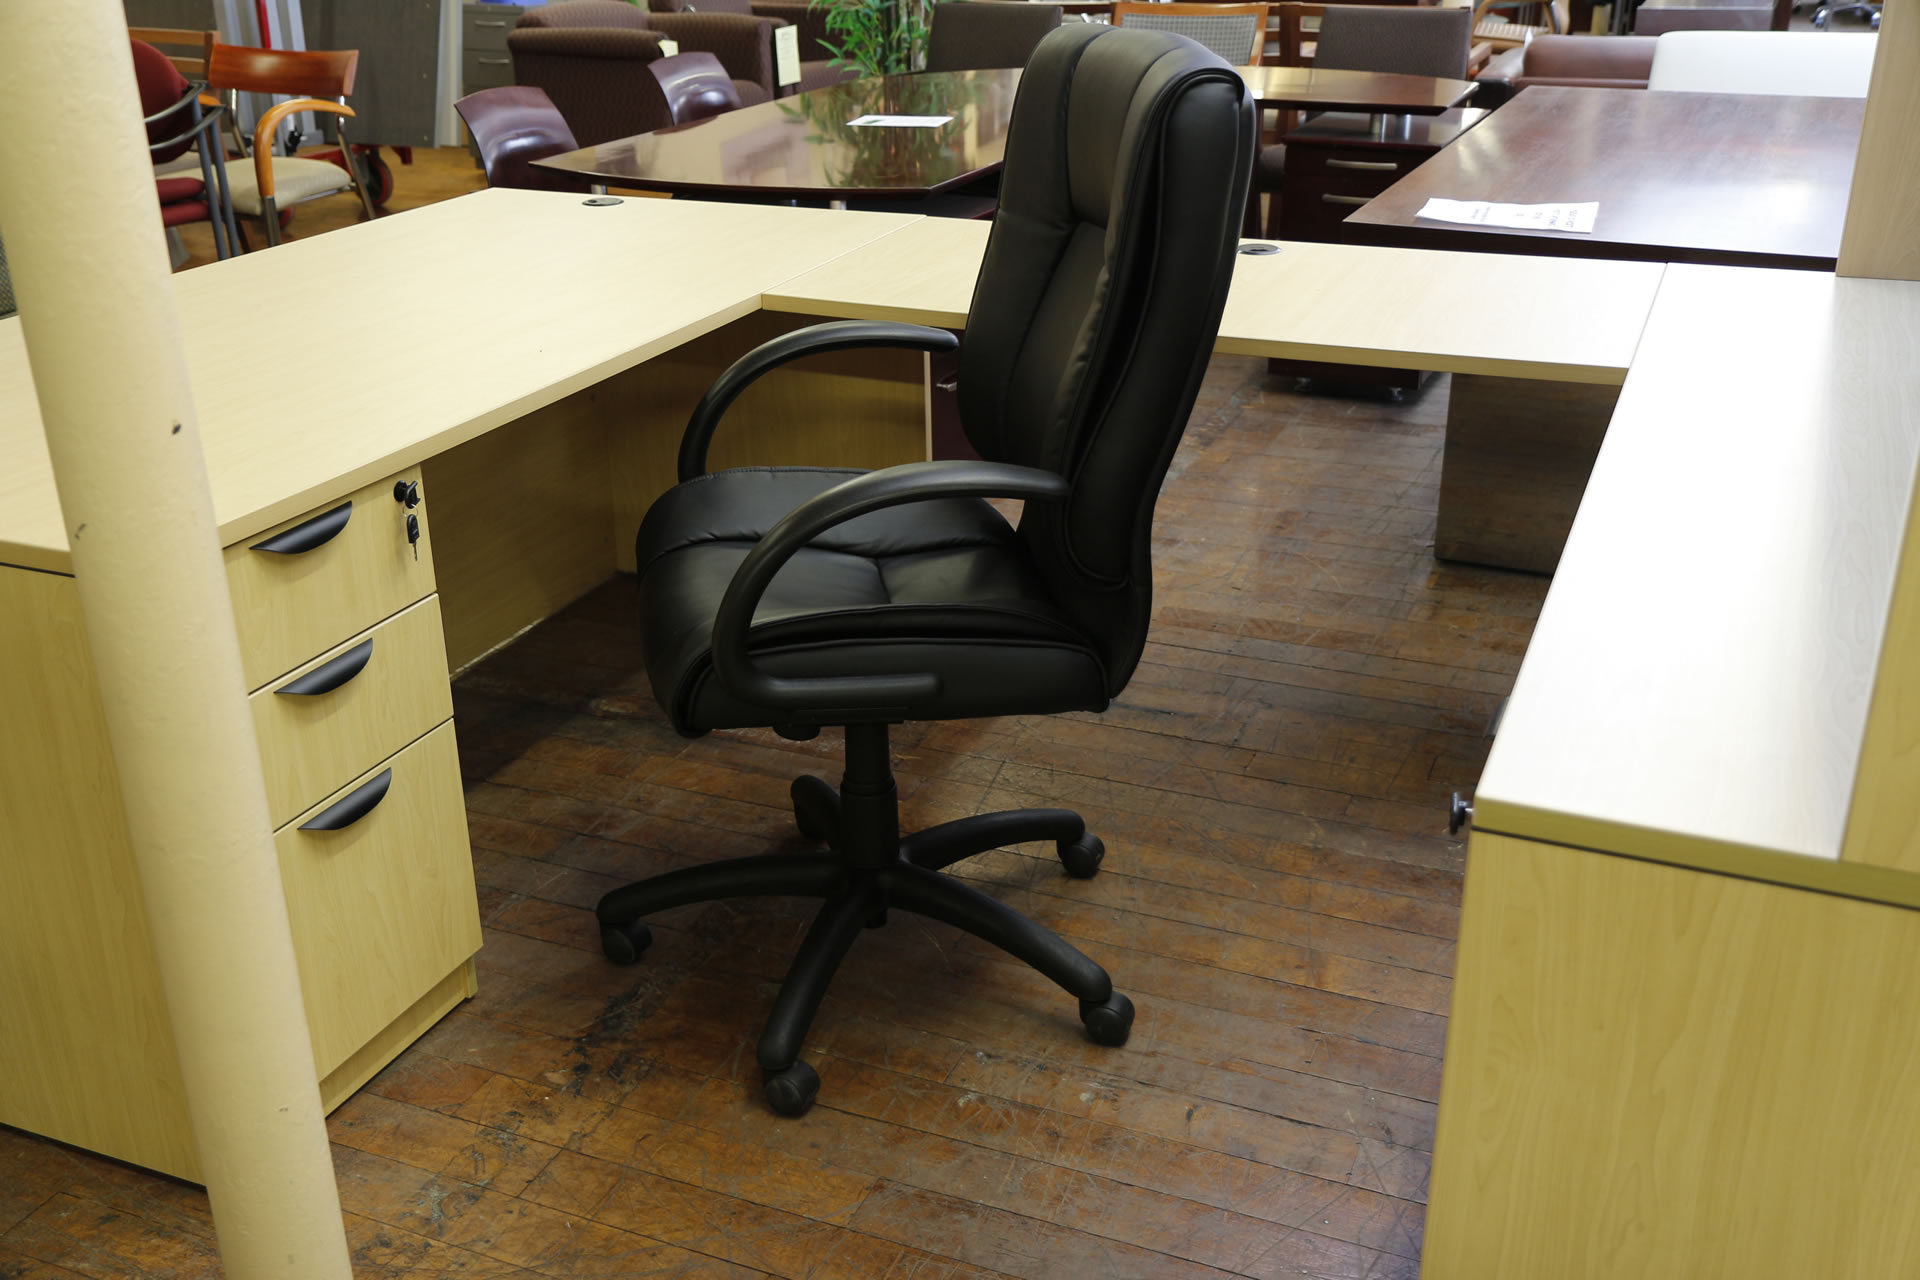 peartreeofficefurniture_peartreeofficefurniture_peartreeofficefurniture_2015-06-18_20-54-16.jpg